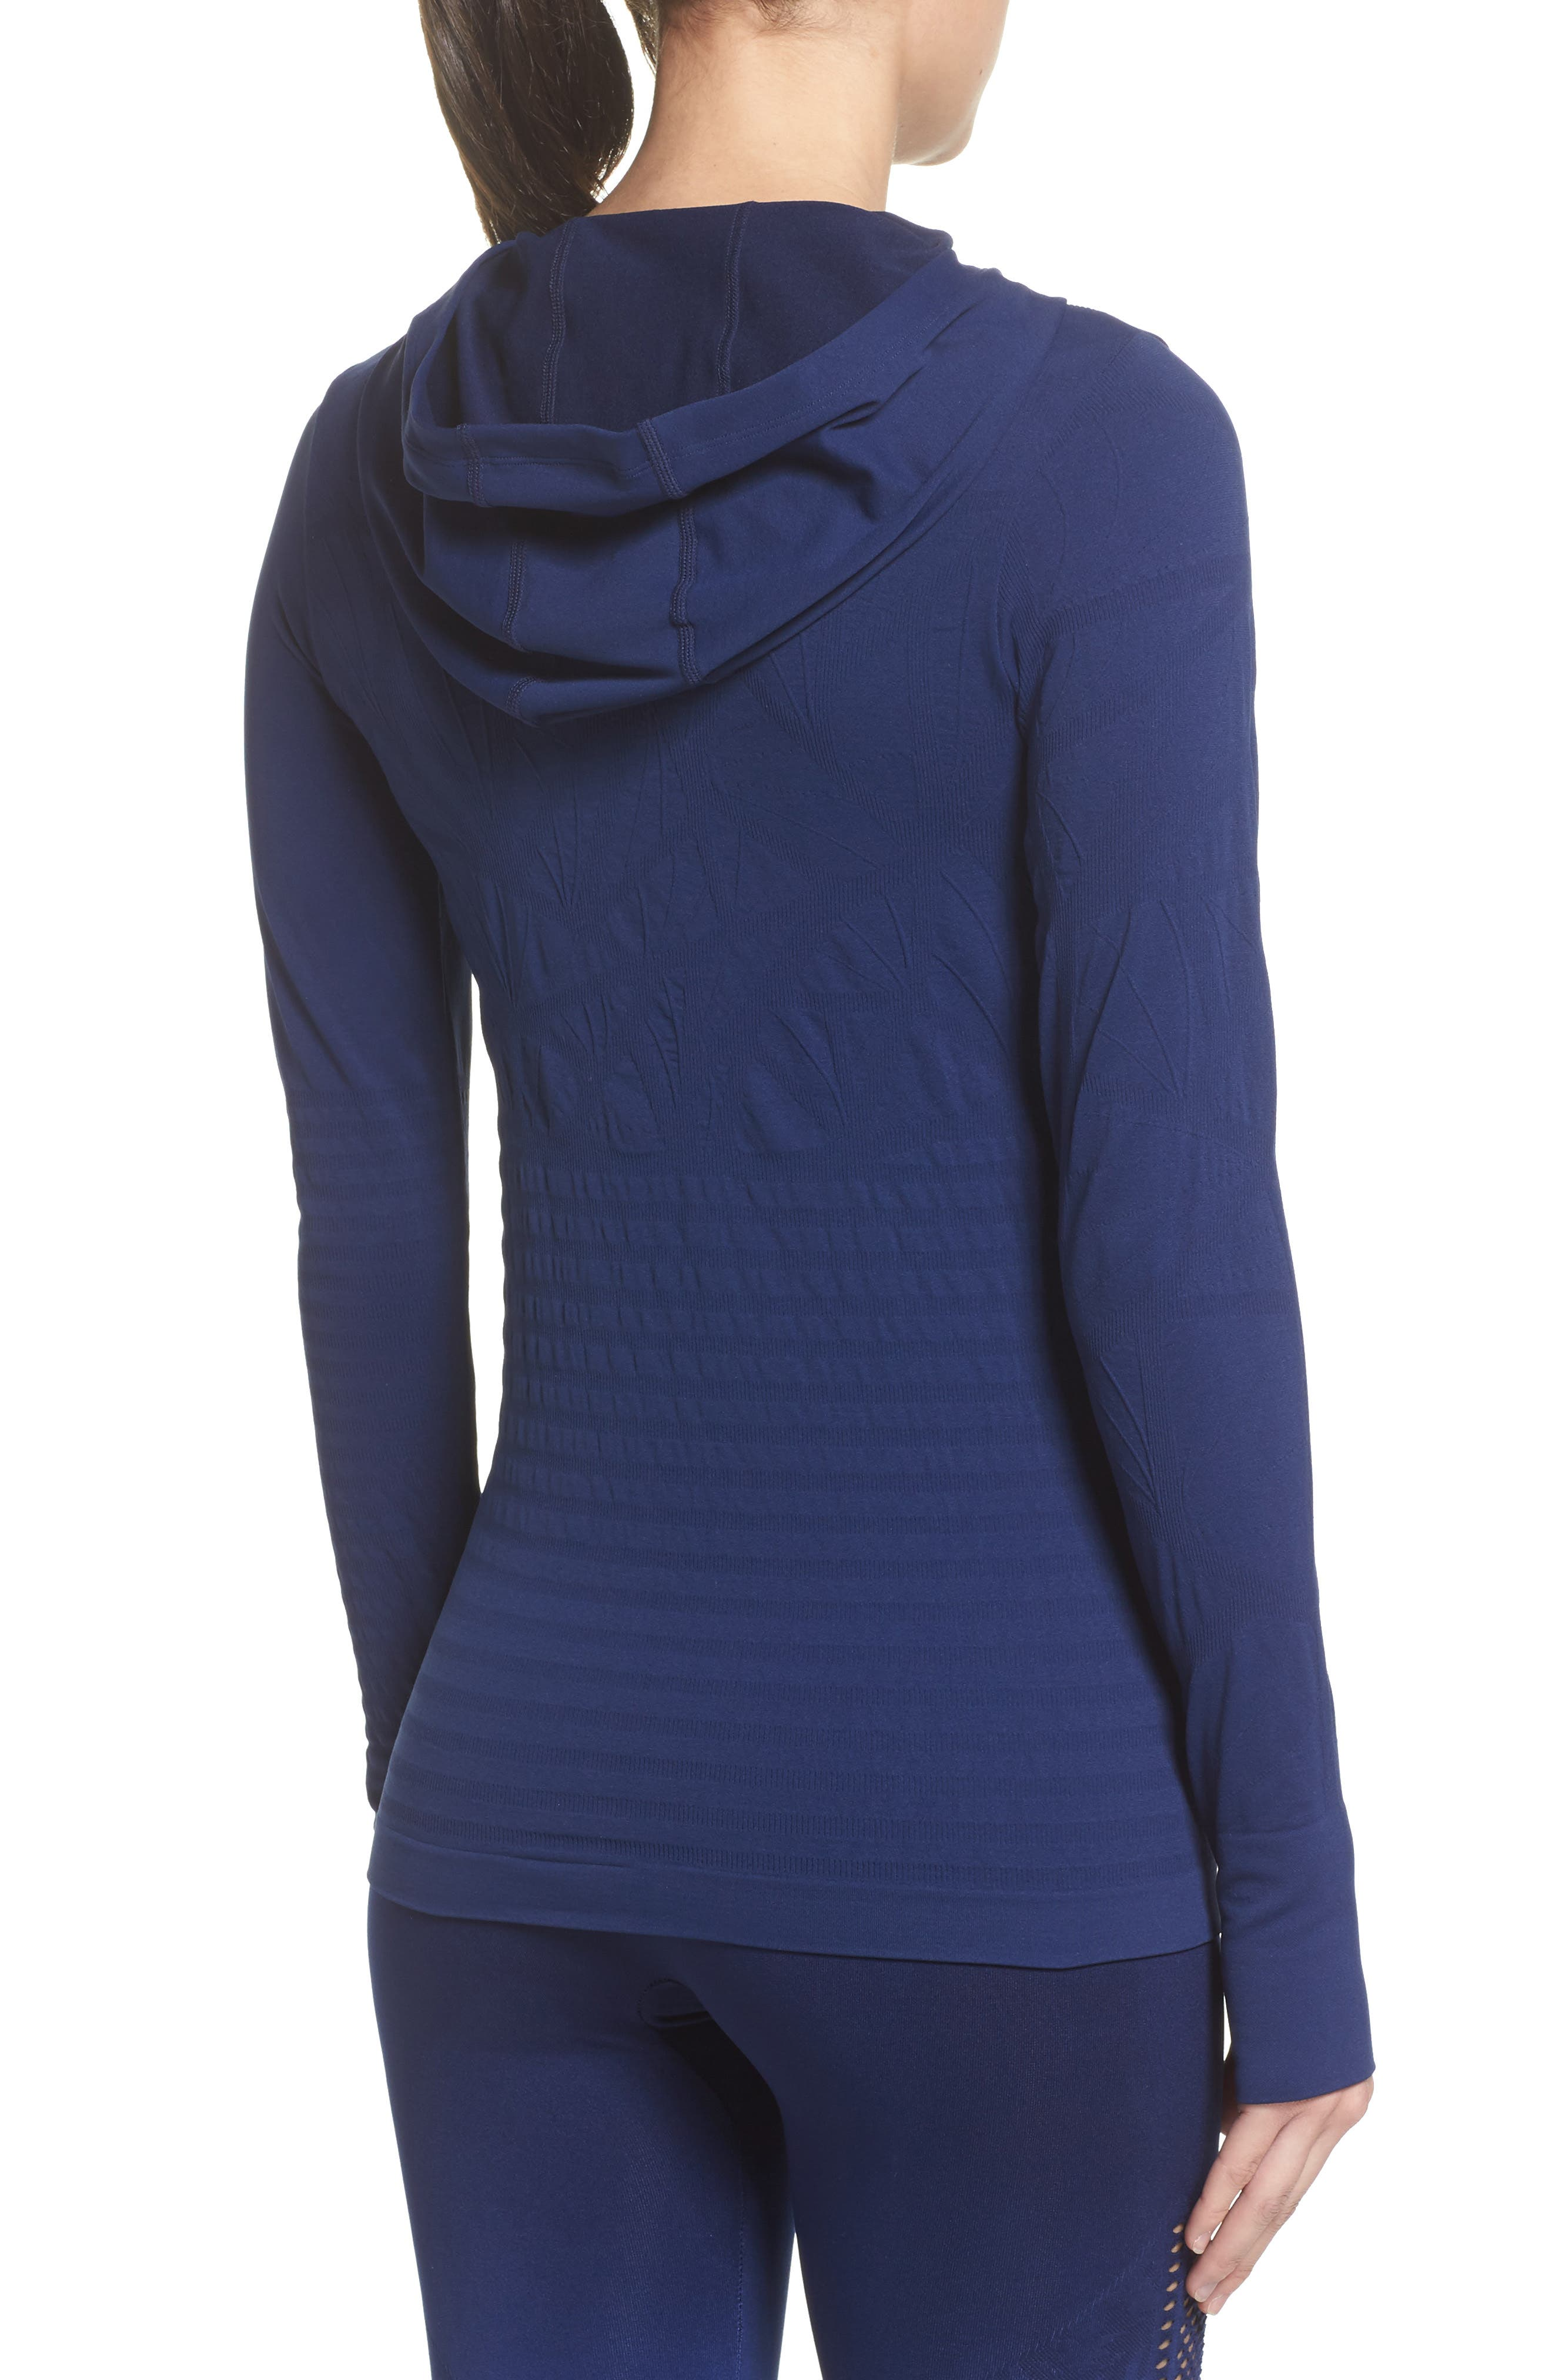 No Boundary Hoodie,                             Alternate thumbnail 2, color,                             Medieval Blue